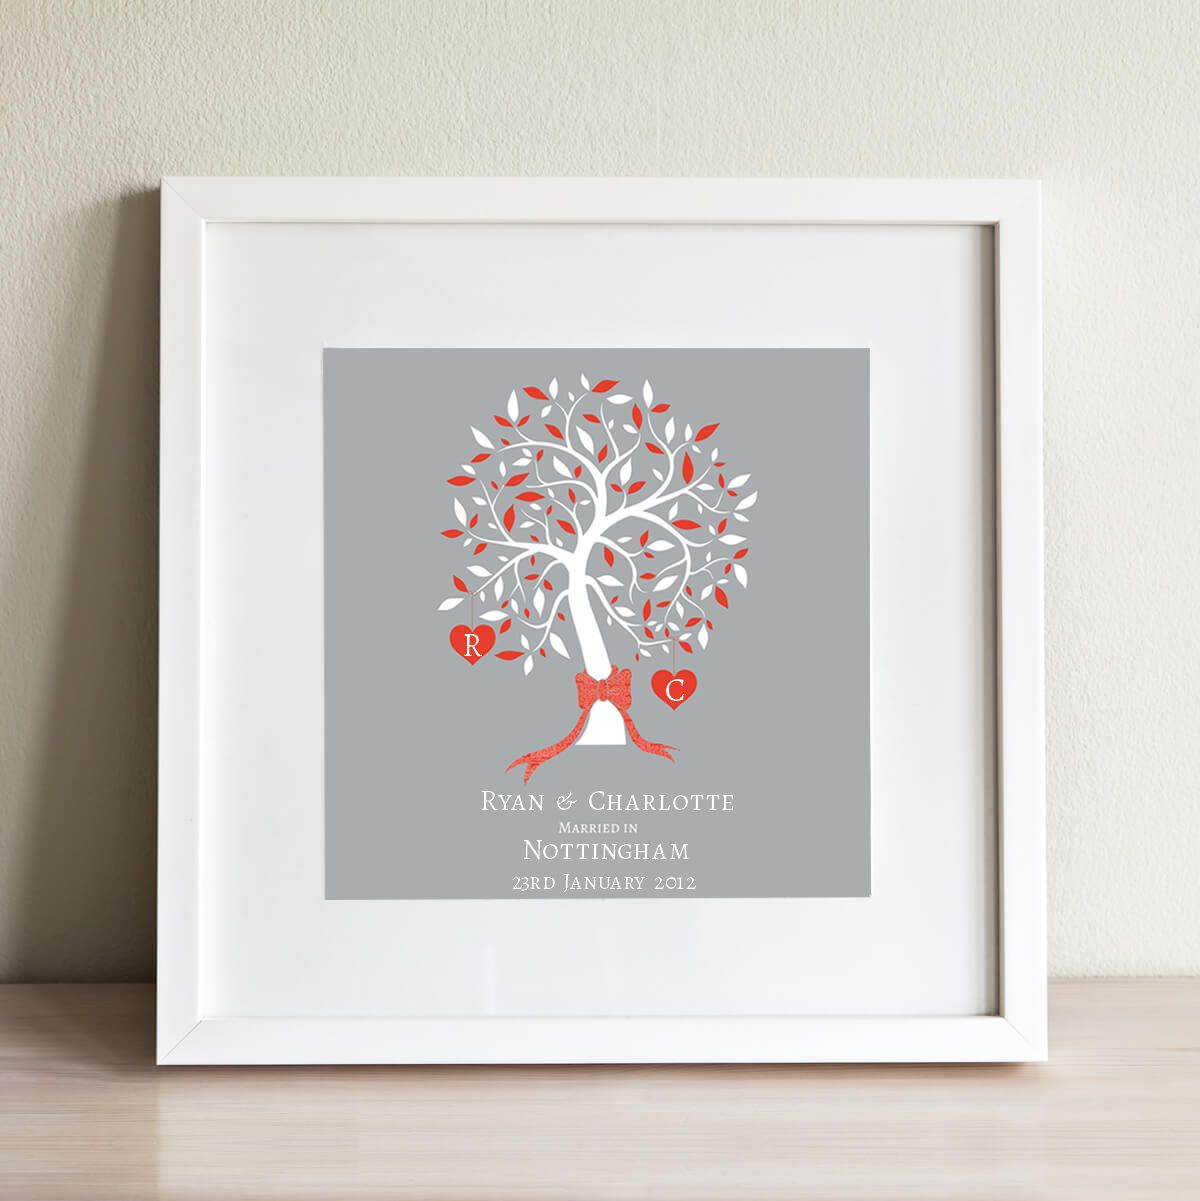 Personalised Anniversary Gifts Special Anniversary Present